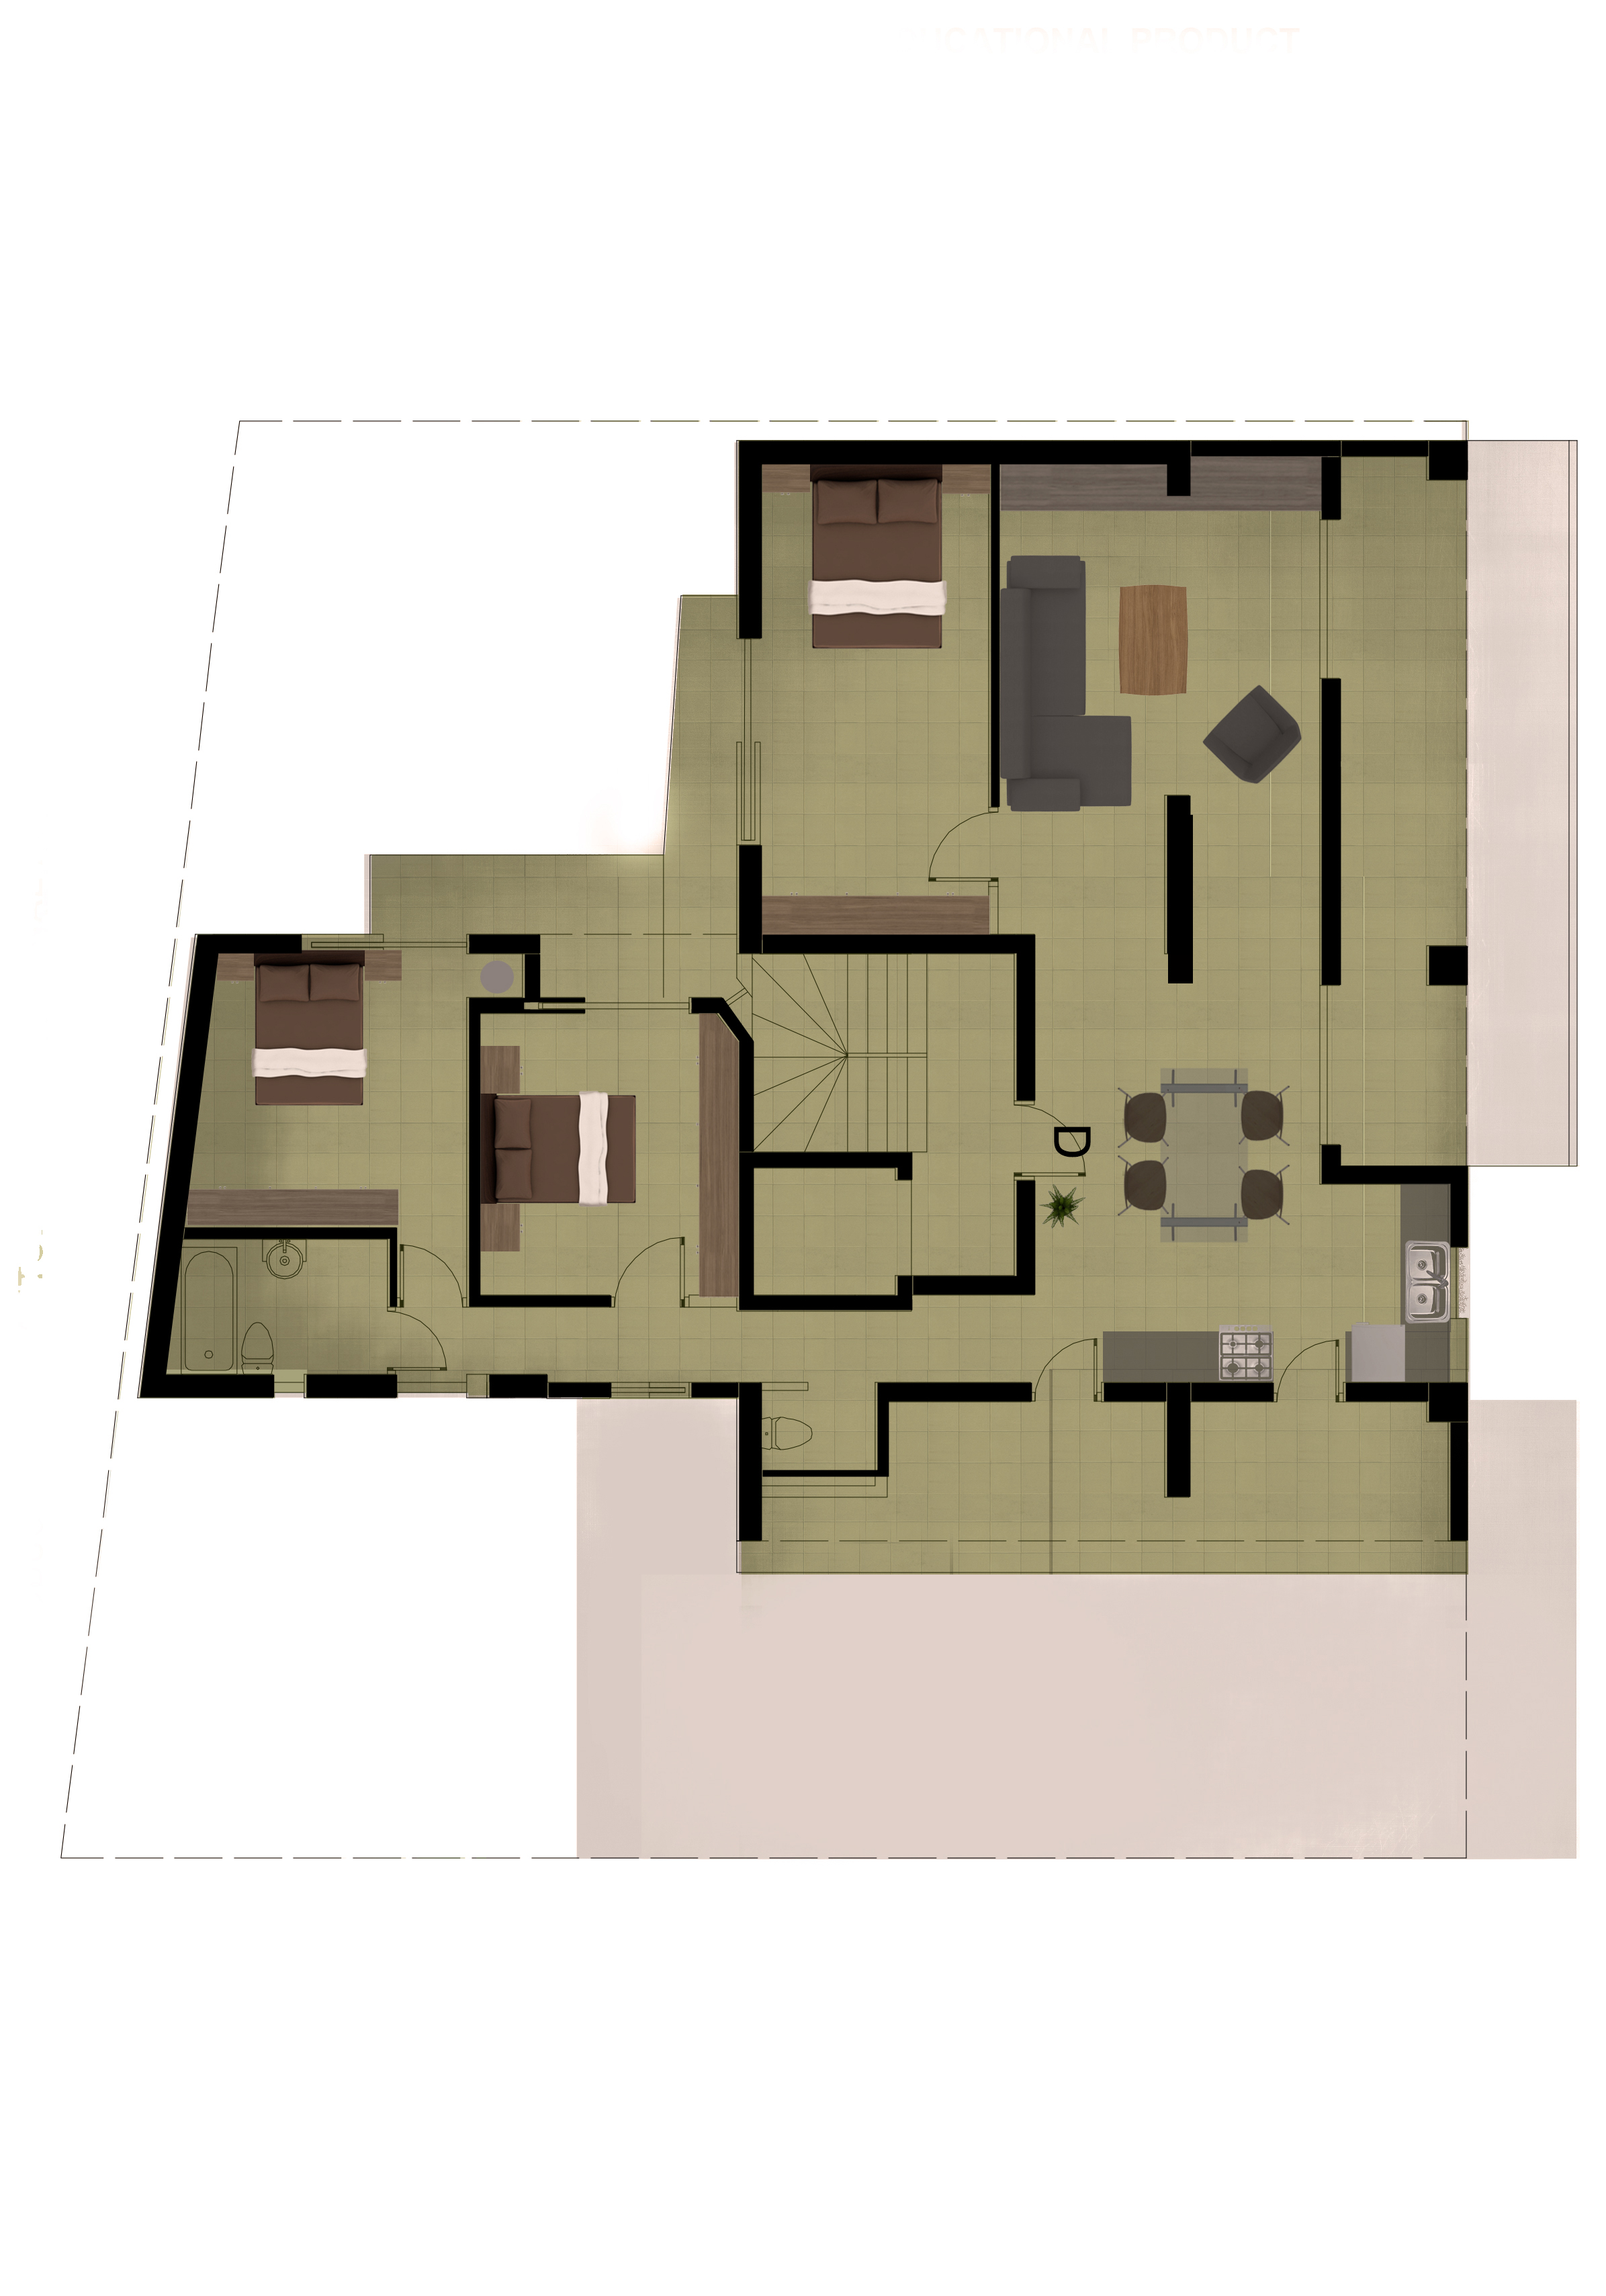 Plan 4th Floor